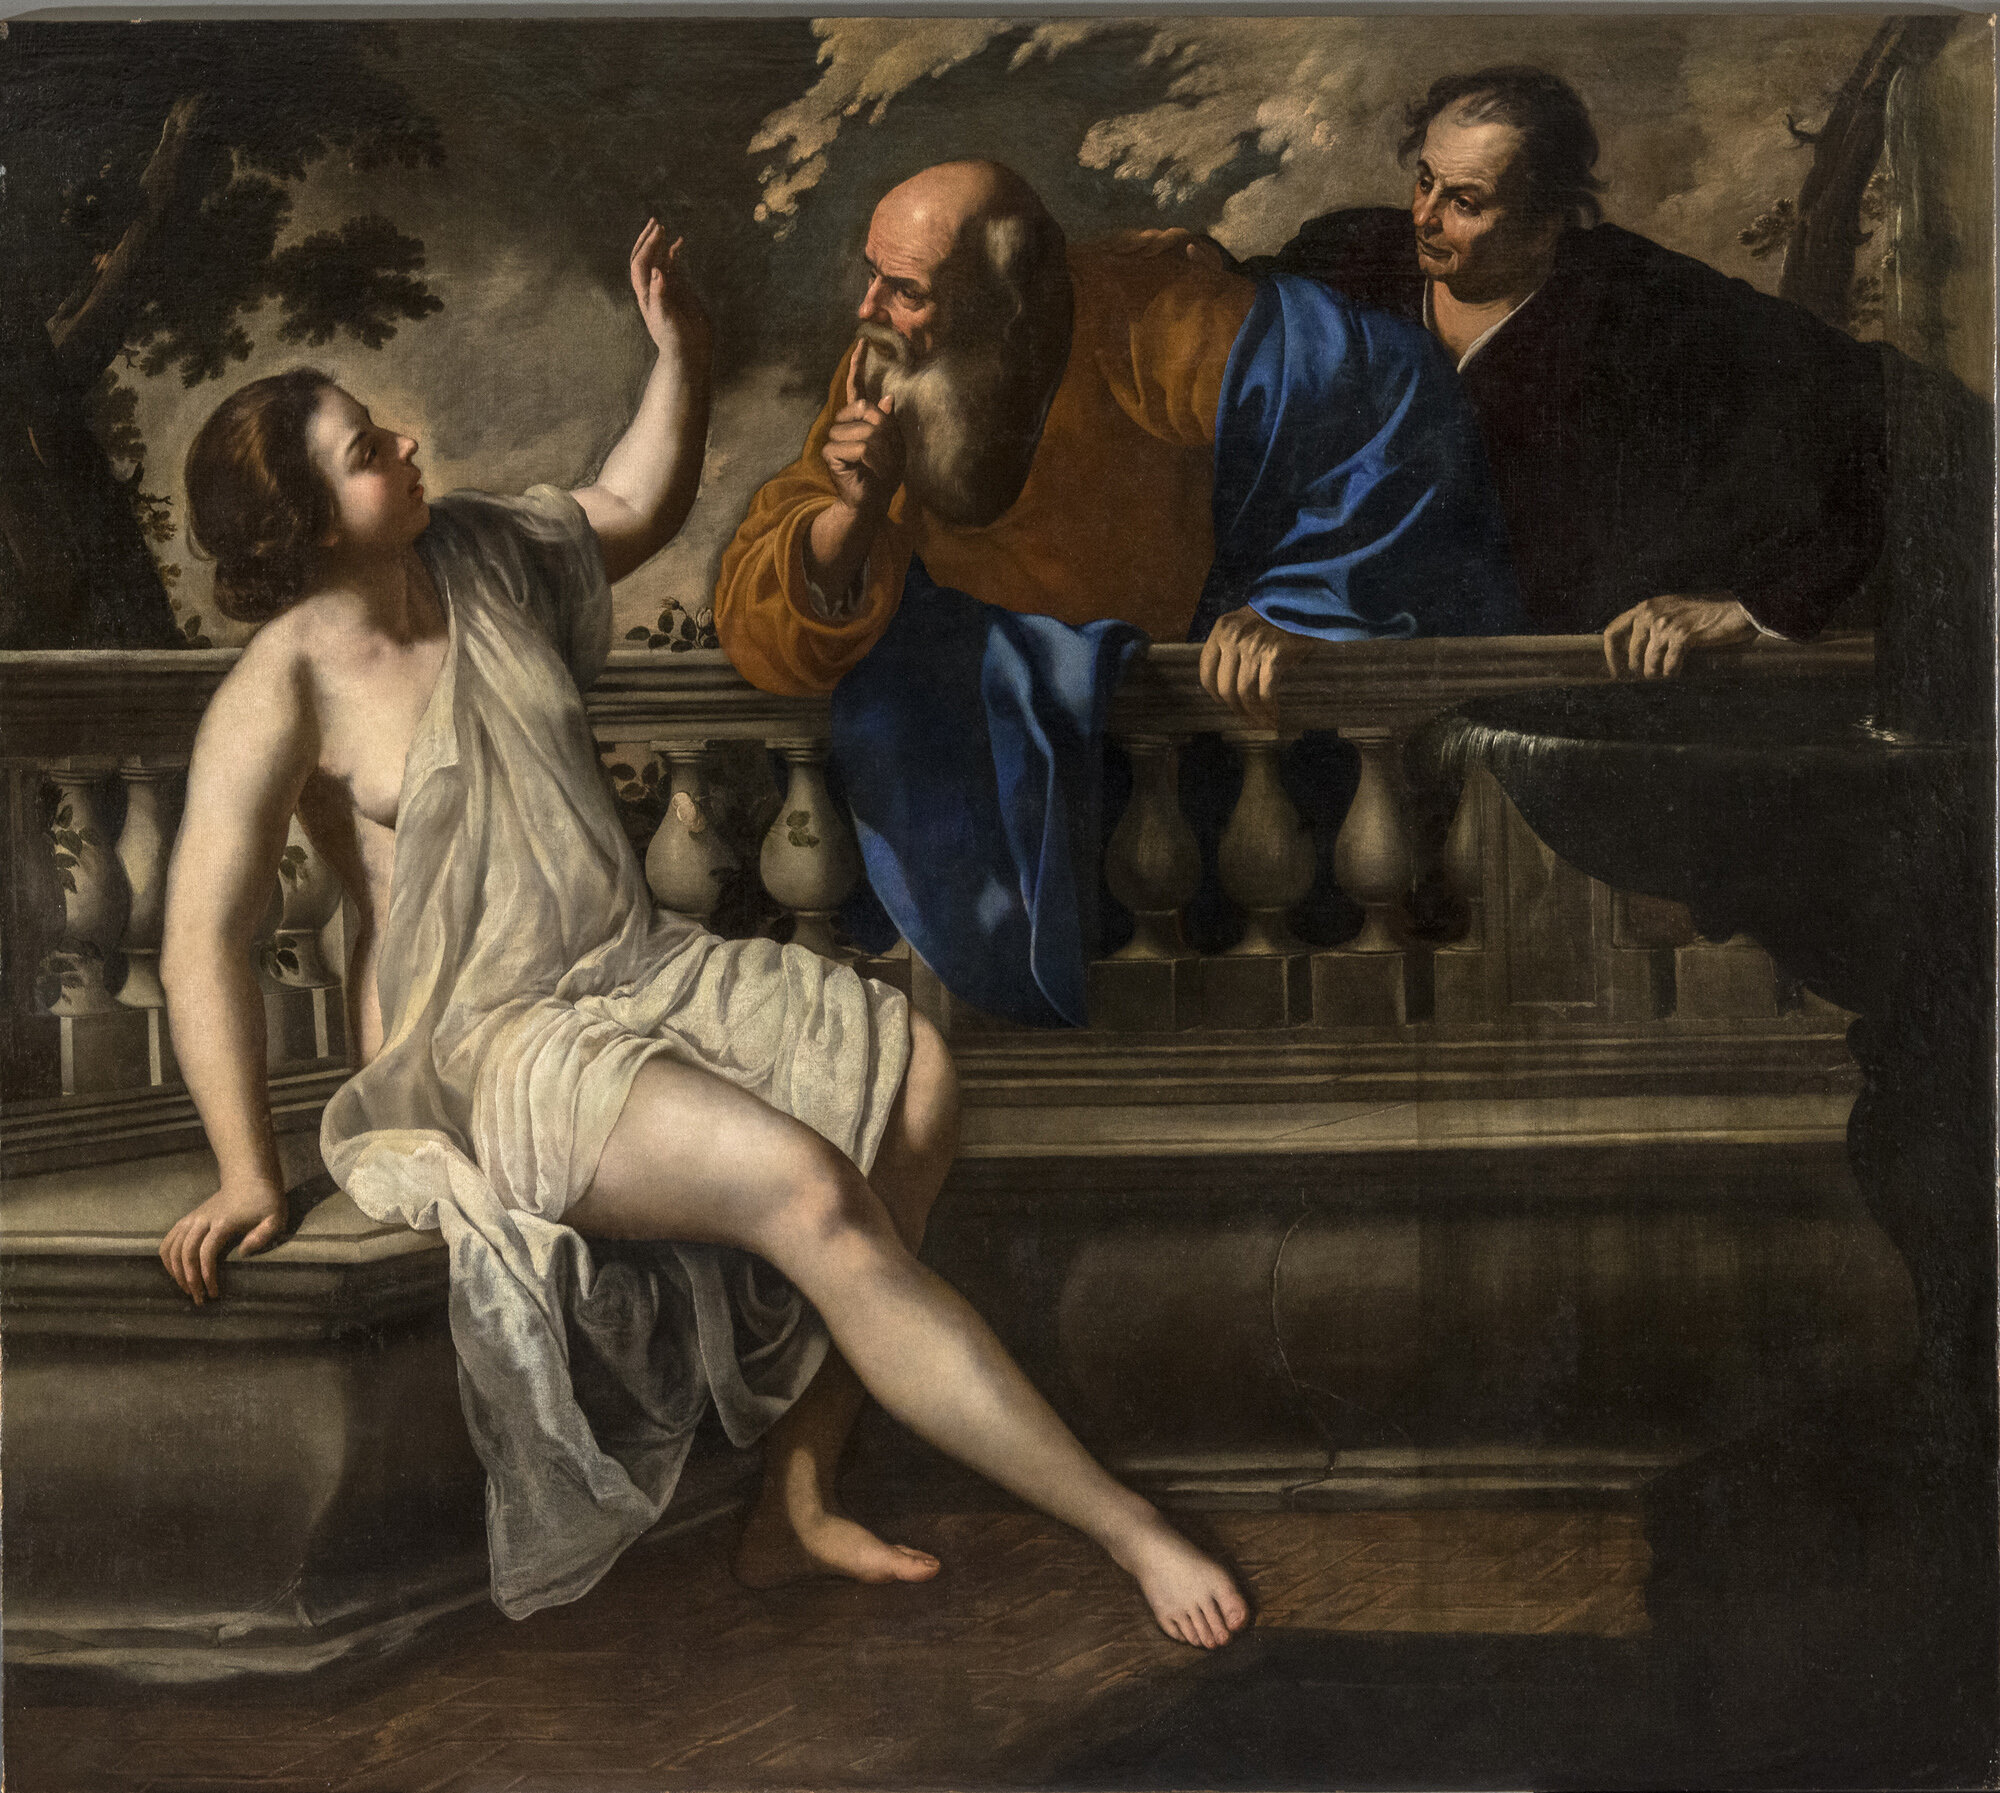 Magnificent Masterpieces By Artemisia Gentileschi On View At